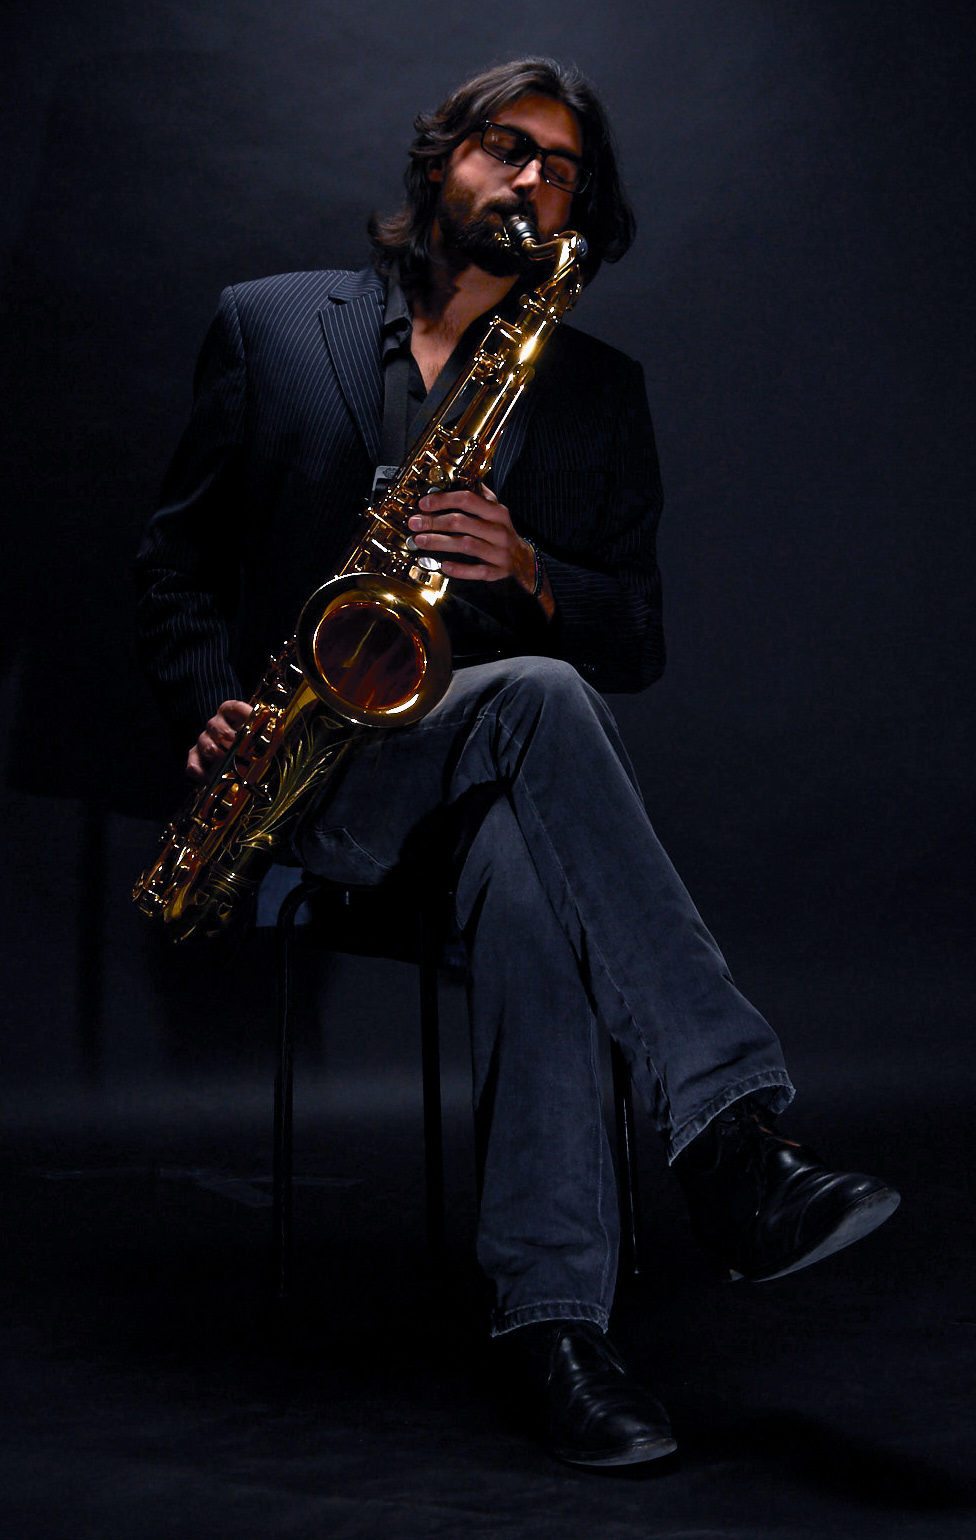 Saxophonist Berlin - Milo Lombardi by David Vendryes